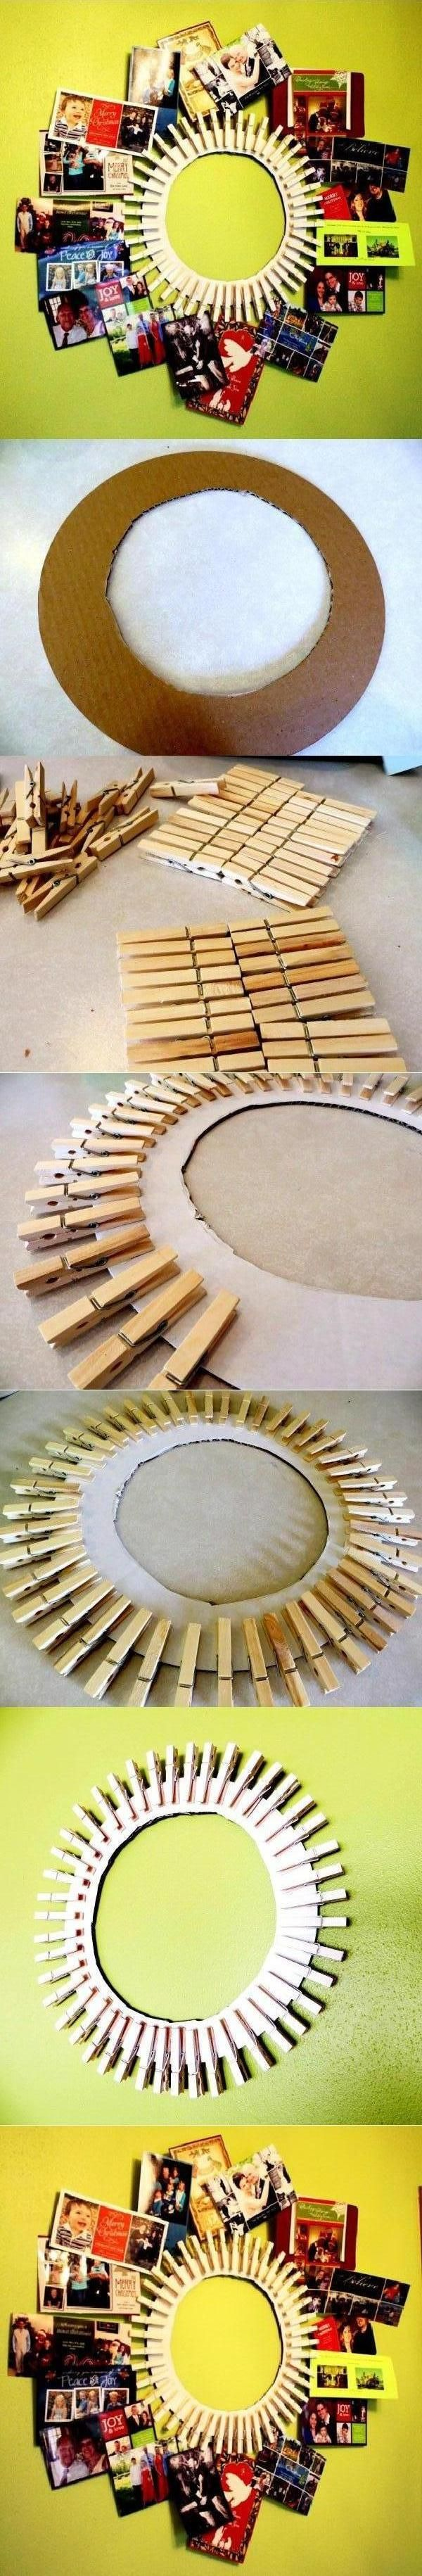 DIY Clothespin Picture Frame #BSC #Dorm #Decor